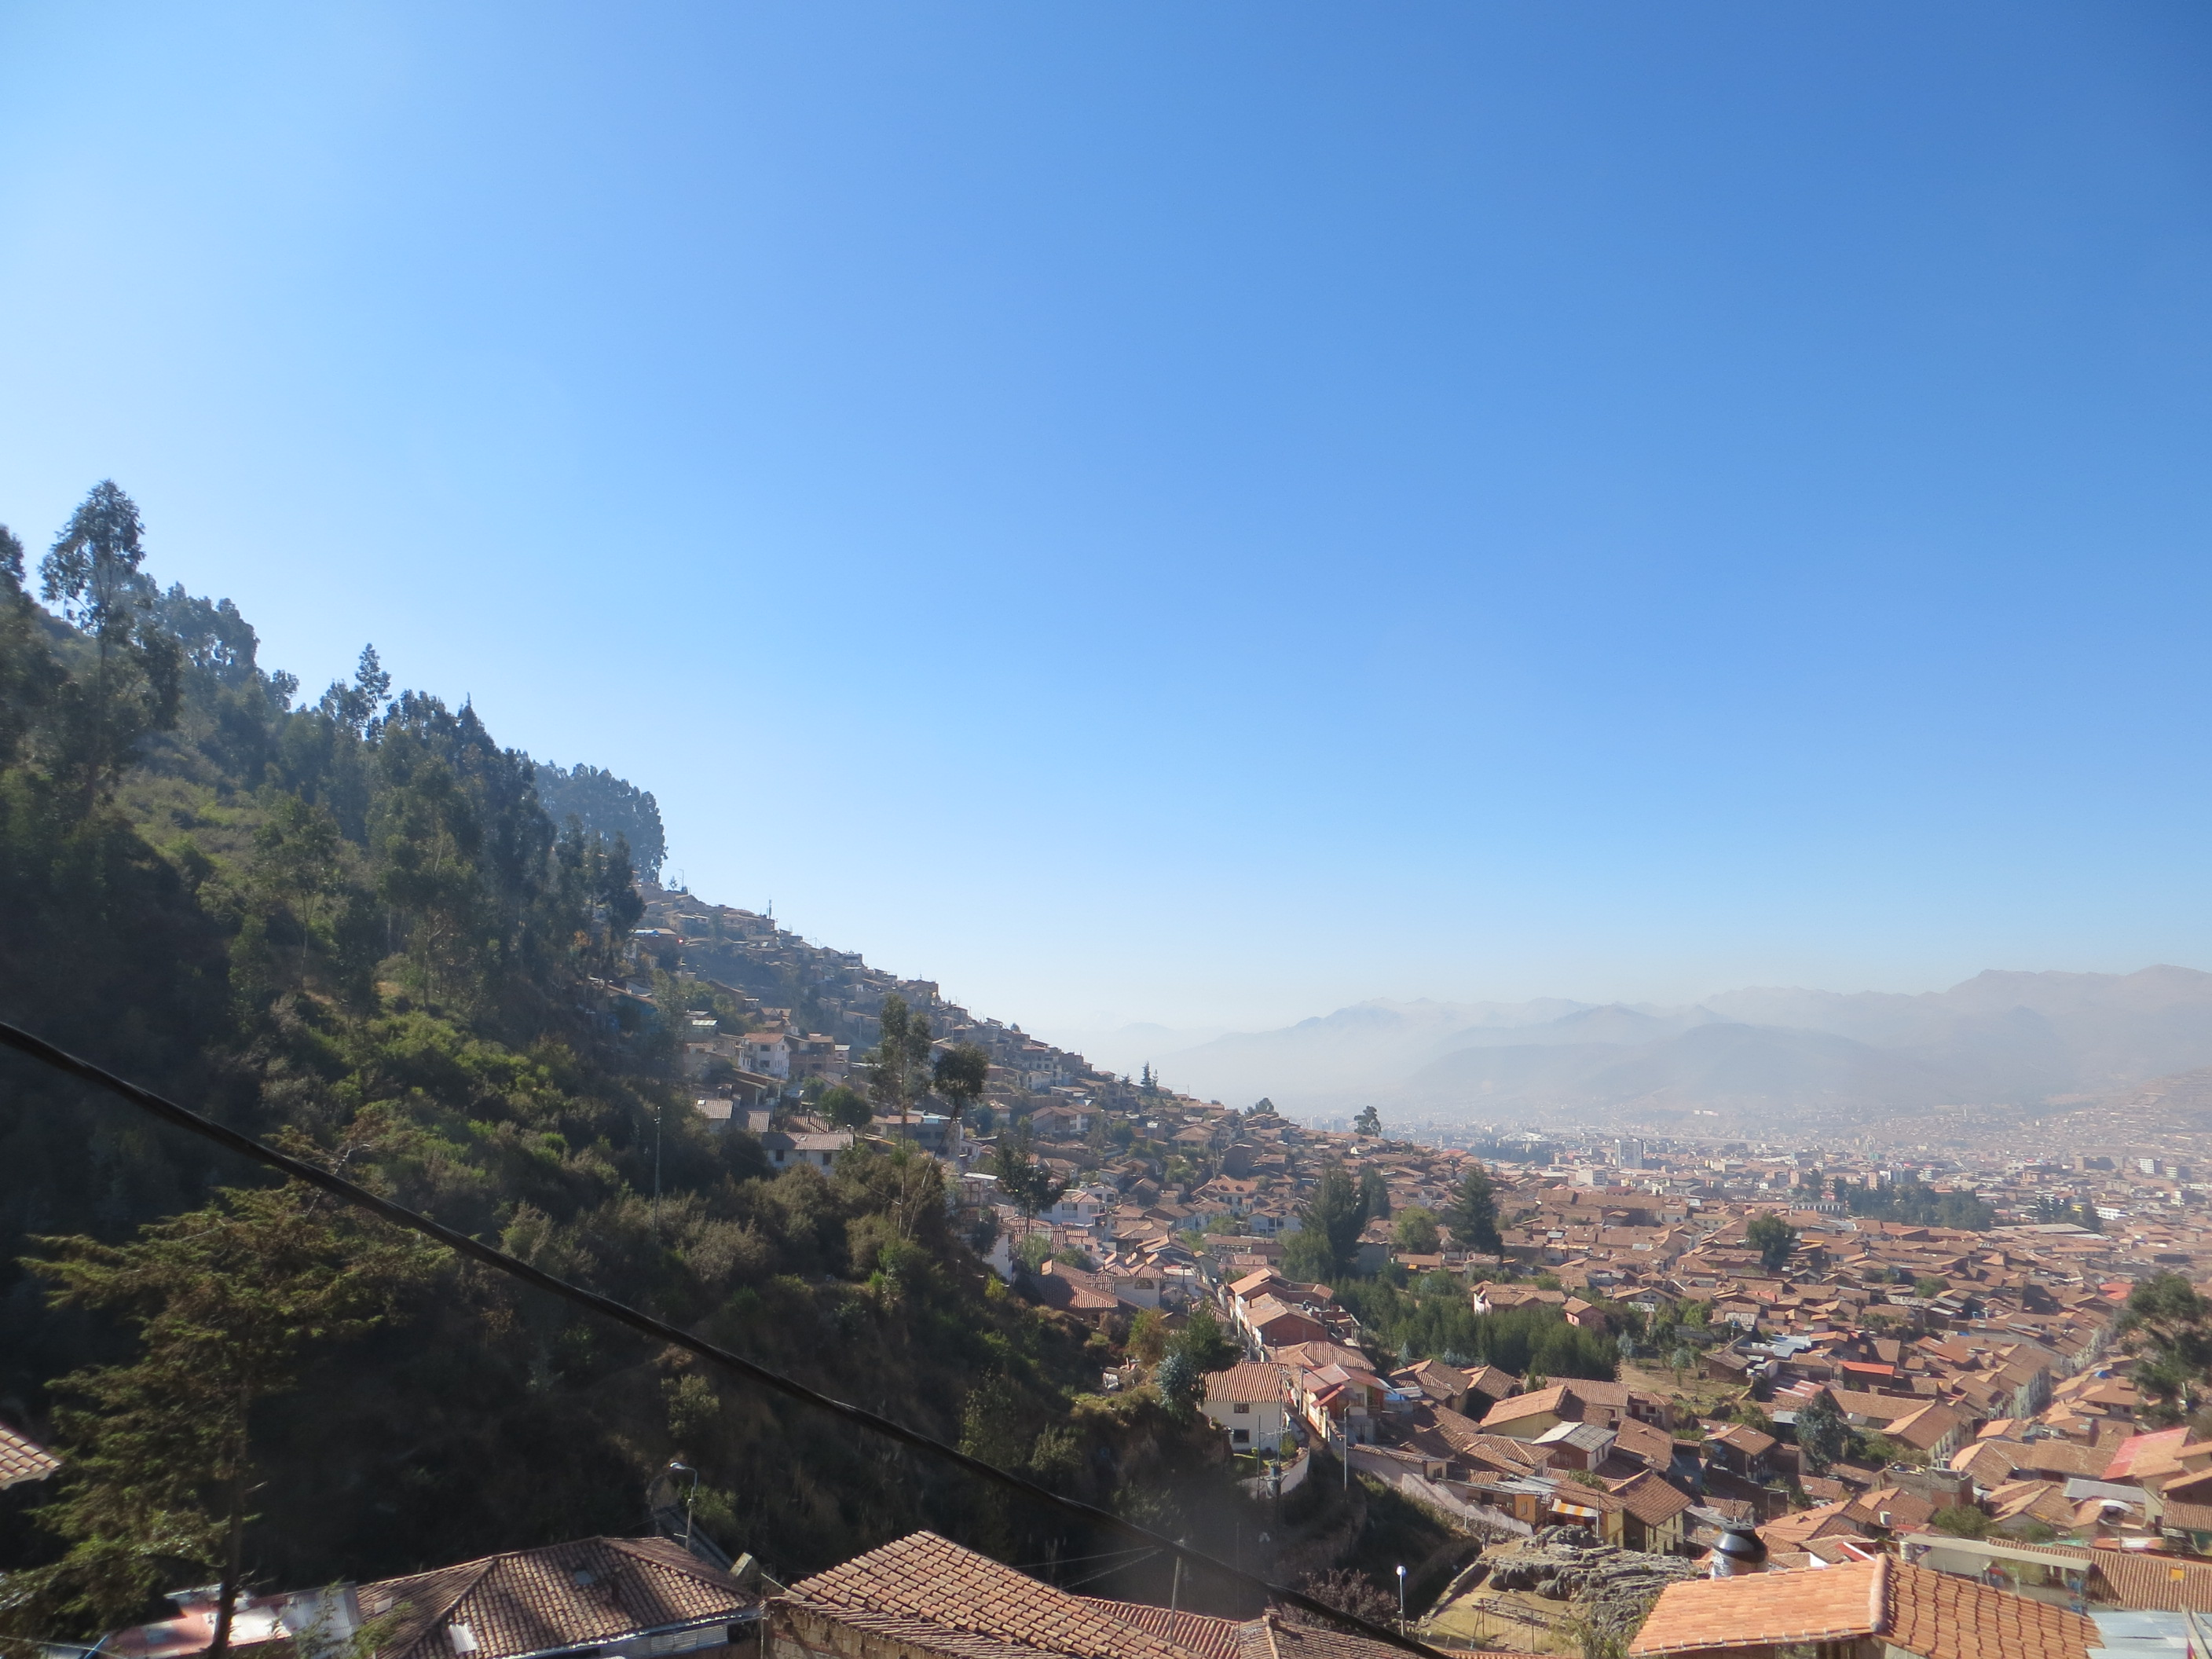 The Peru Chronicles: Days 10 and 11 | Will Bike for Change ...